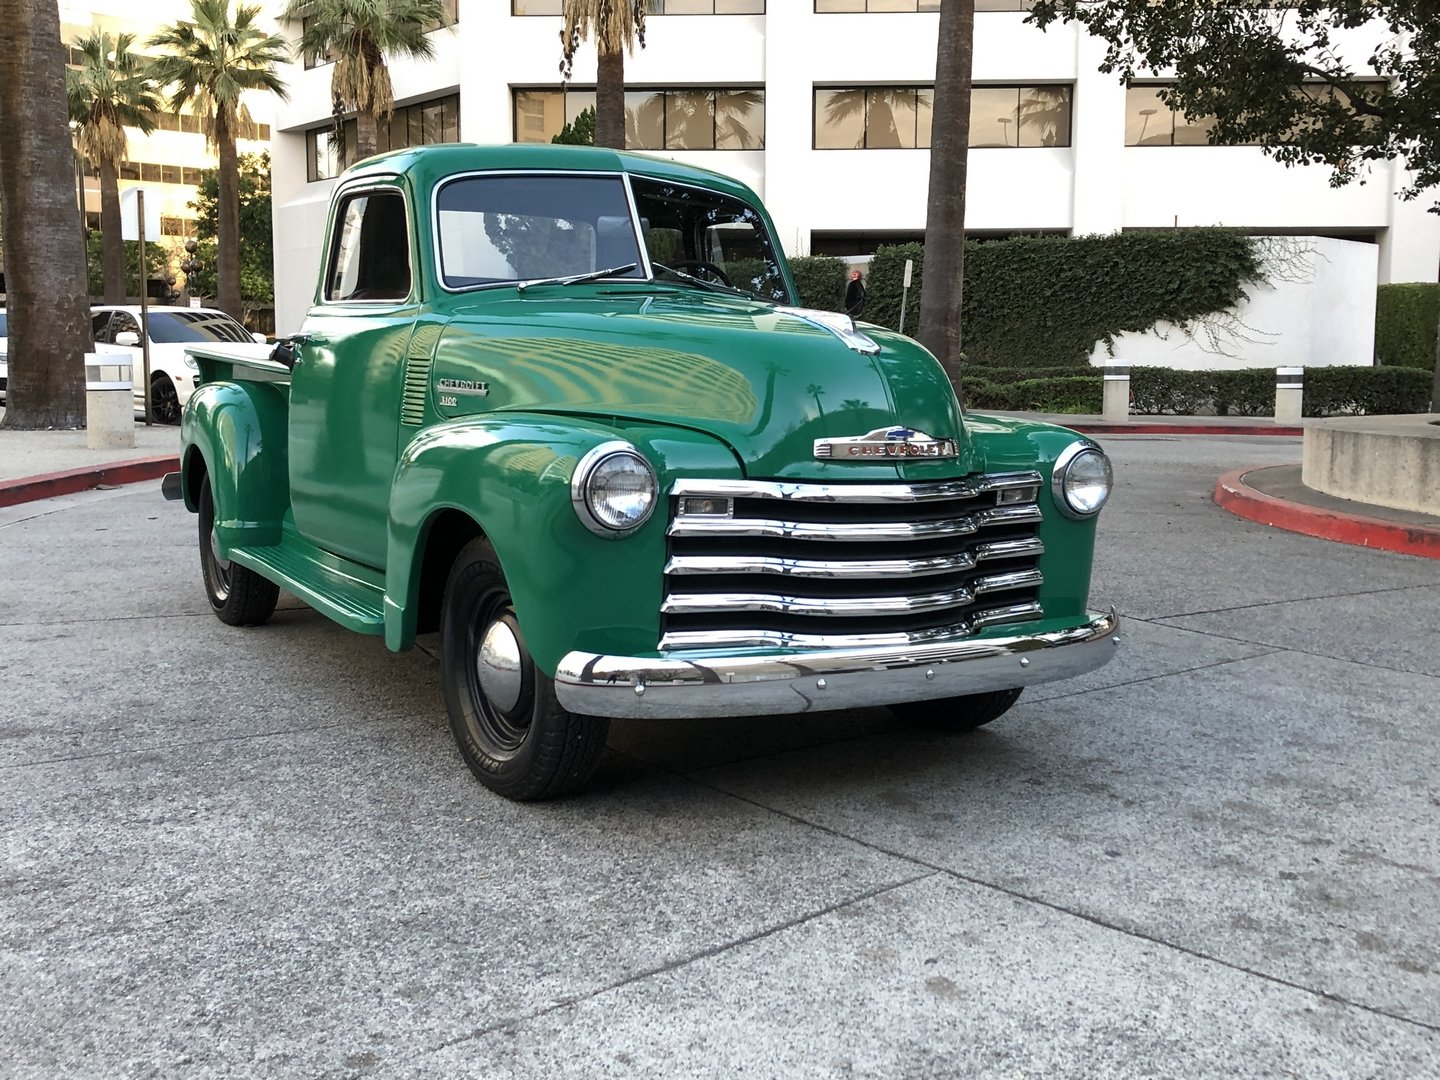 1950 Chevrolet Half Ton 3100 For Sale (picture 1 of 10)